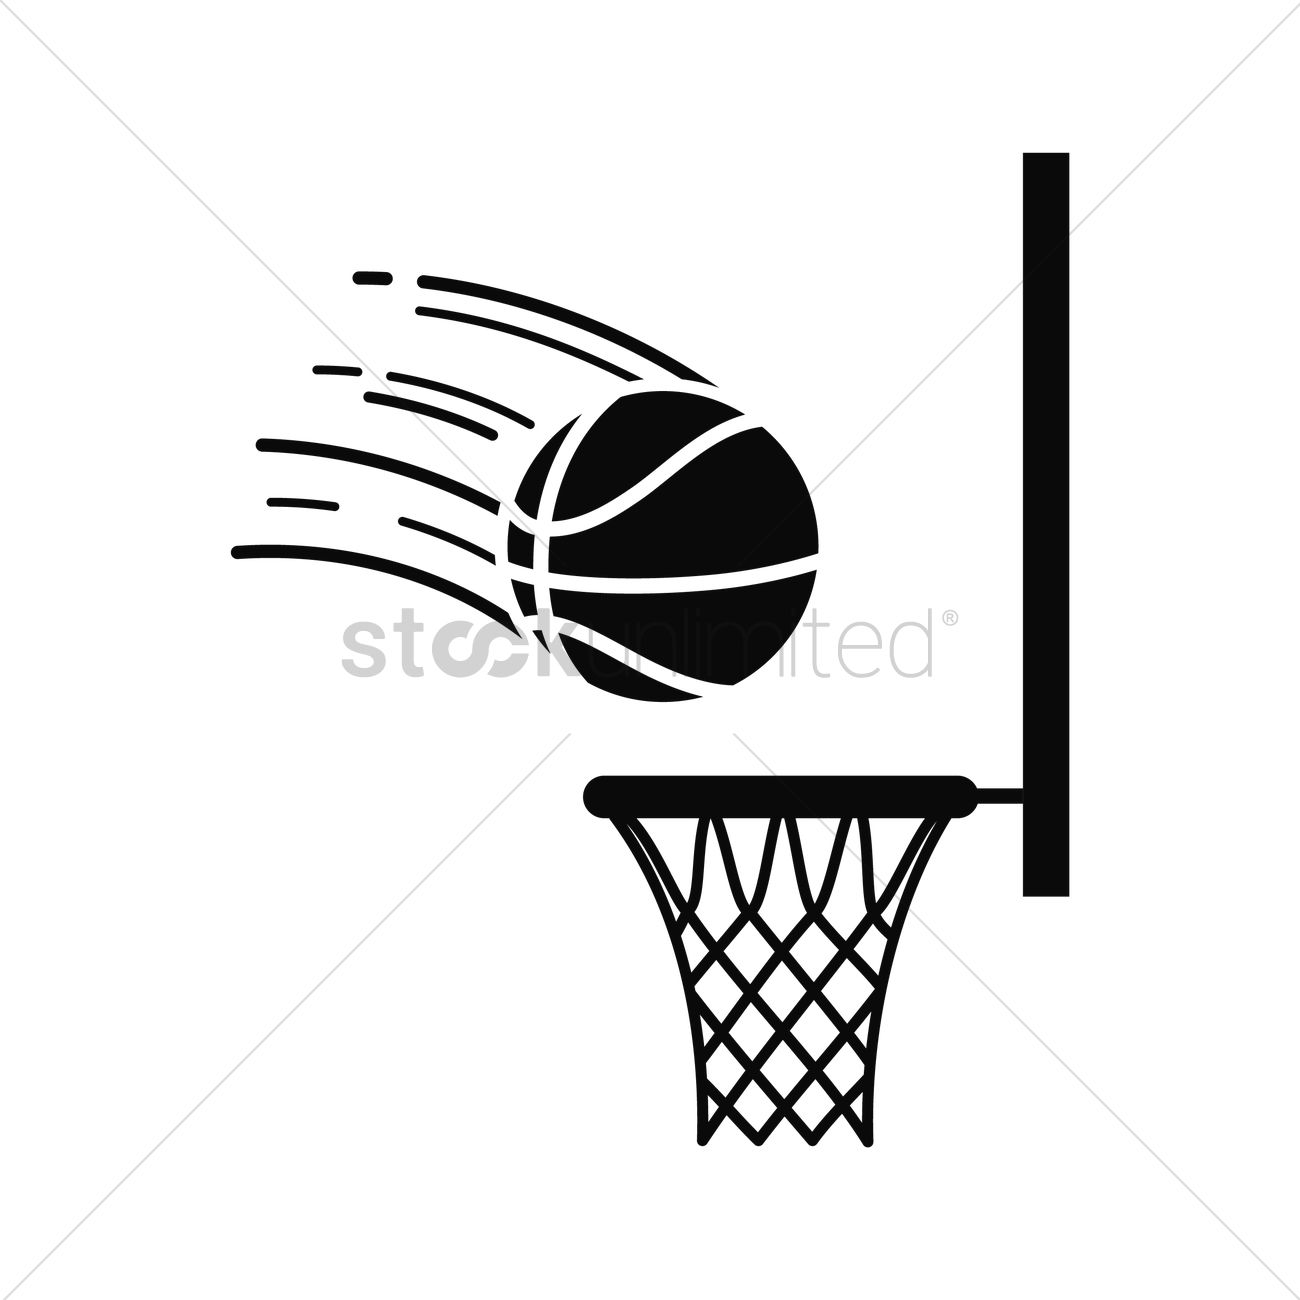 1300x1300 Basketball Going Into Hoop Vector Image